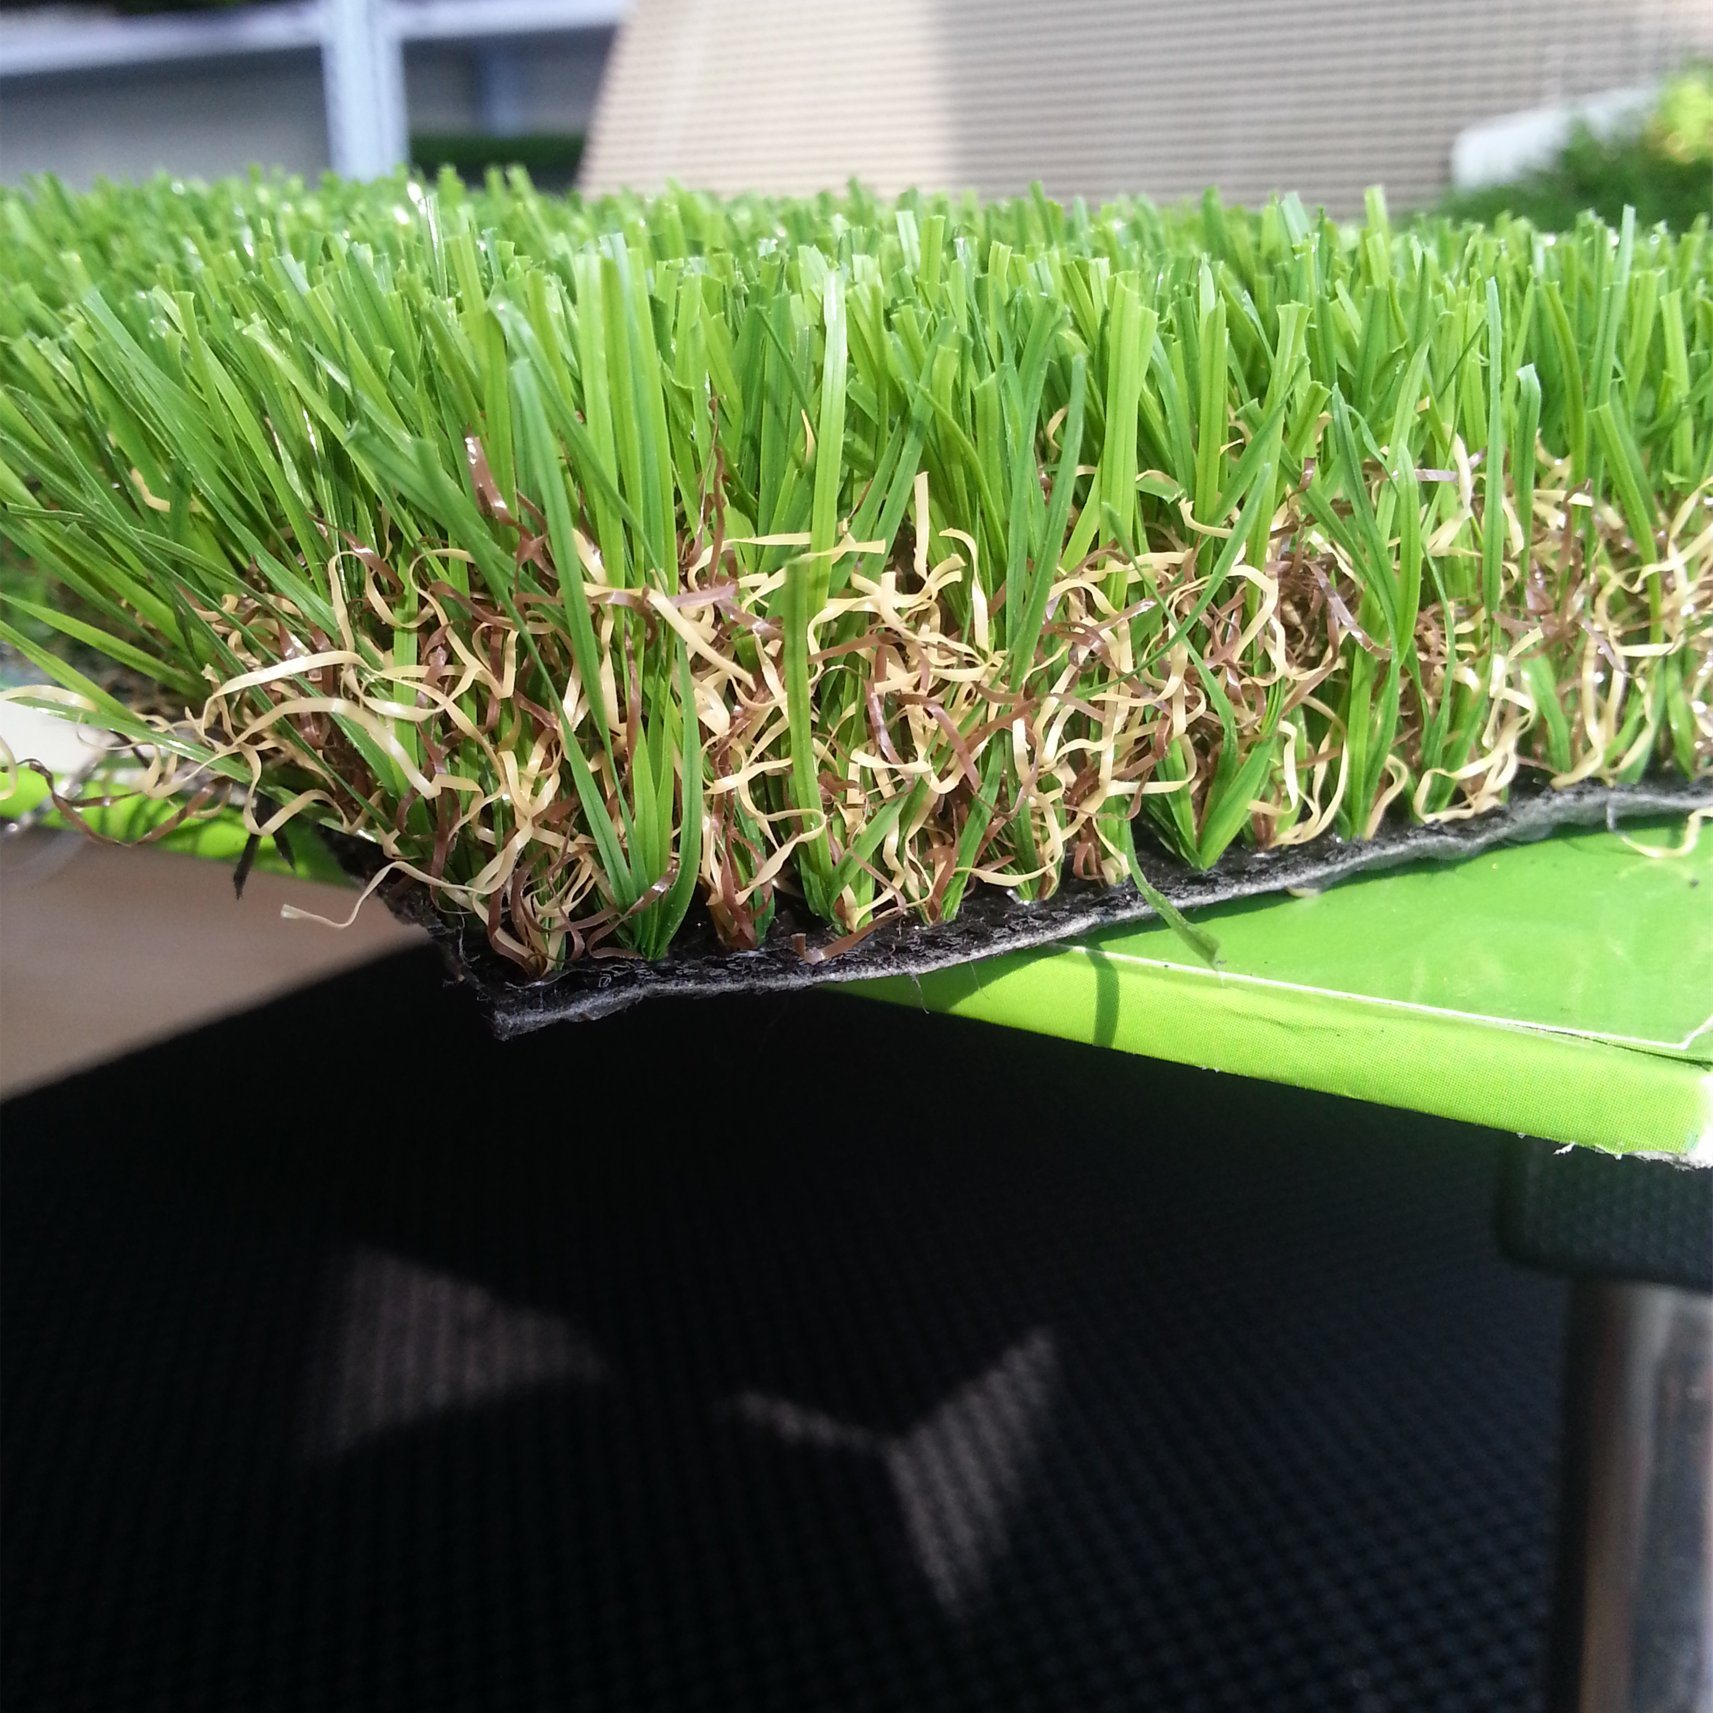 Artificial Grass for Backyard Garden Decoration Without Heavy Metals